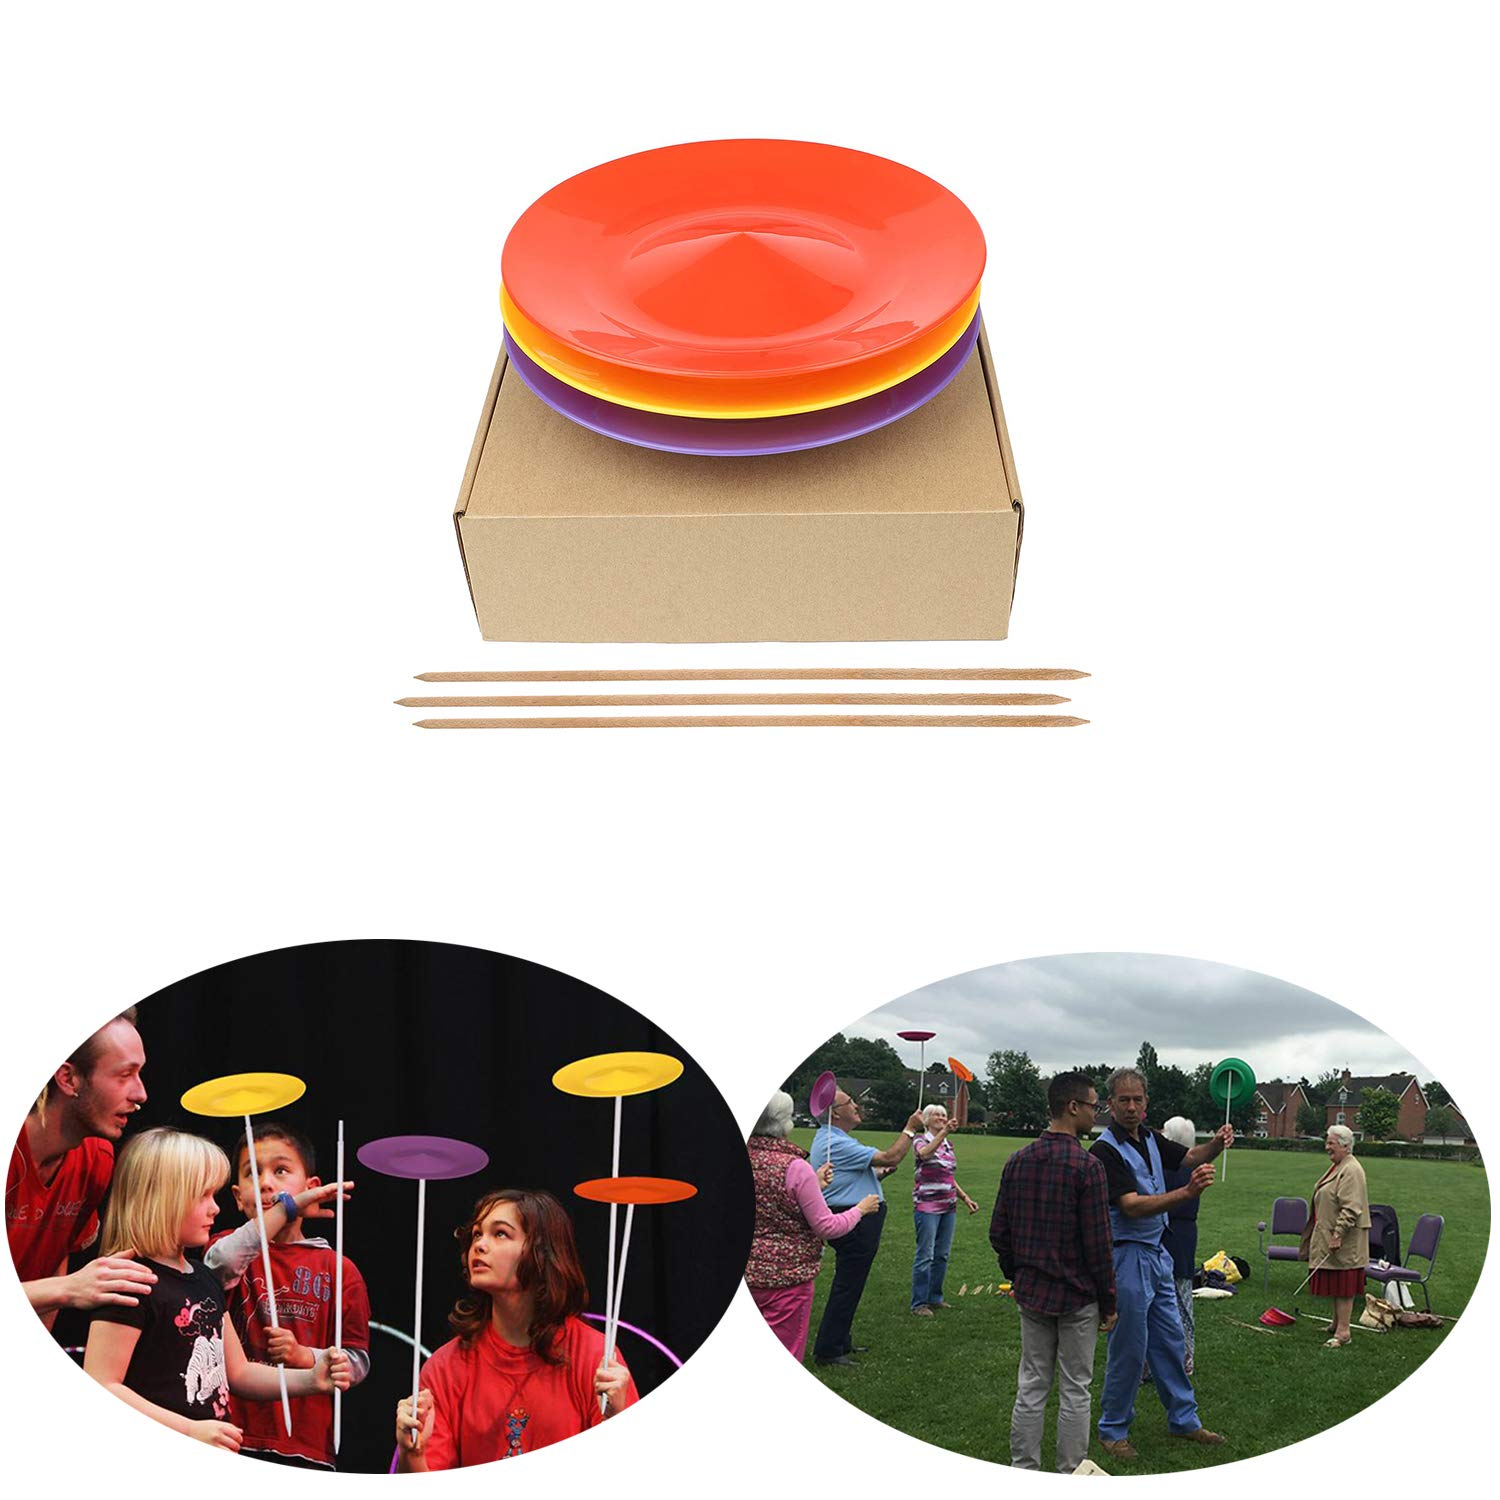 YuXing Professional Spinning Plates / Juggling Plates Set of 3 (11'' 3.8OZ Red Yellow Purple) with 3 Durable Sticks (22.6 Inches 0.7 Ounce) Fit All by YuXing TOY (Image #1)